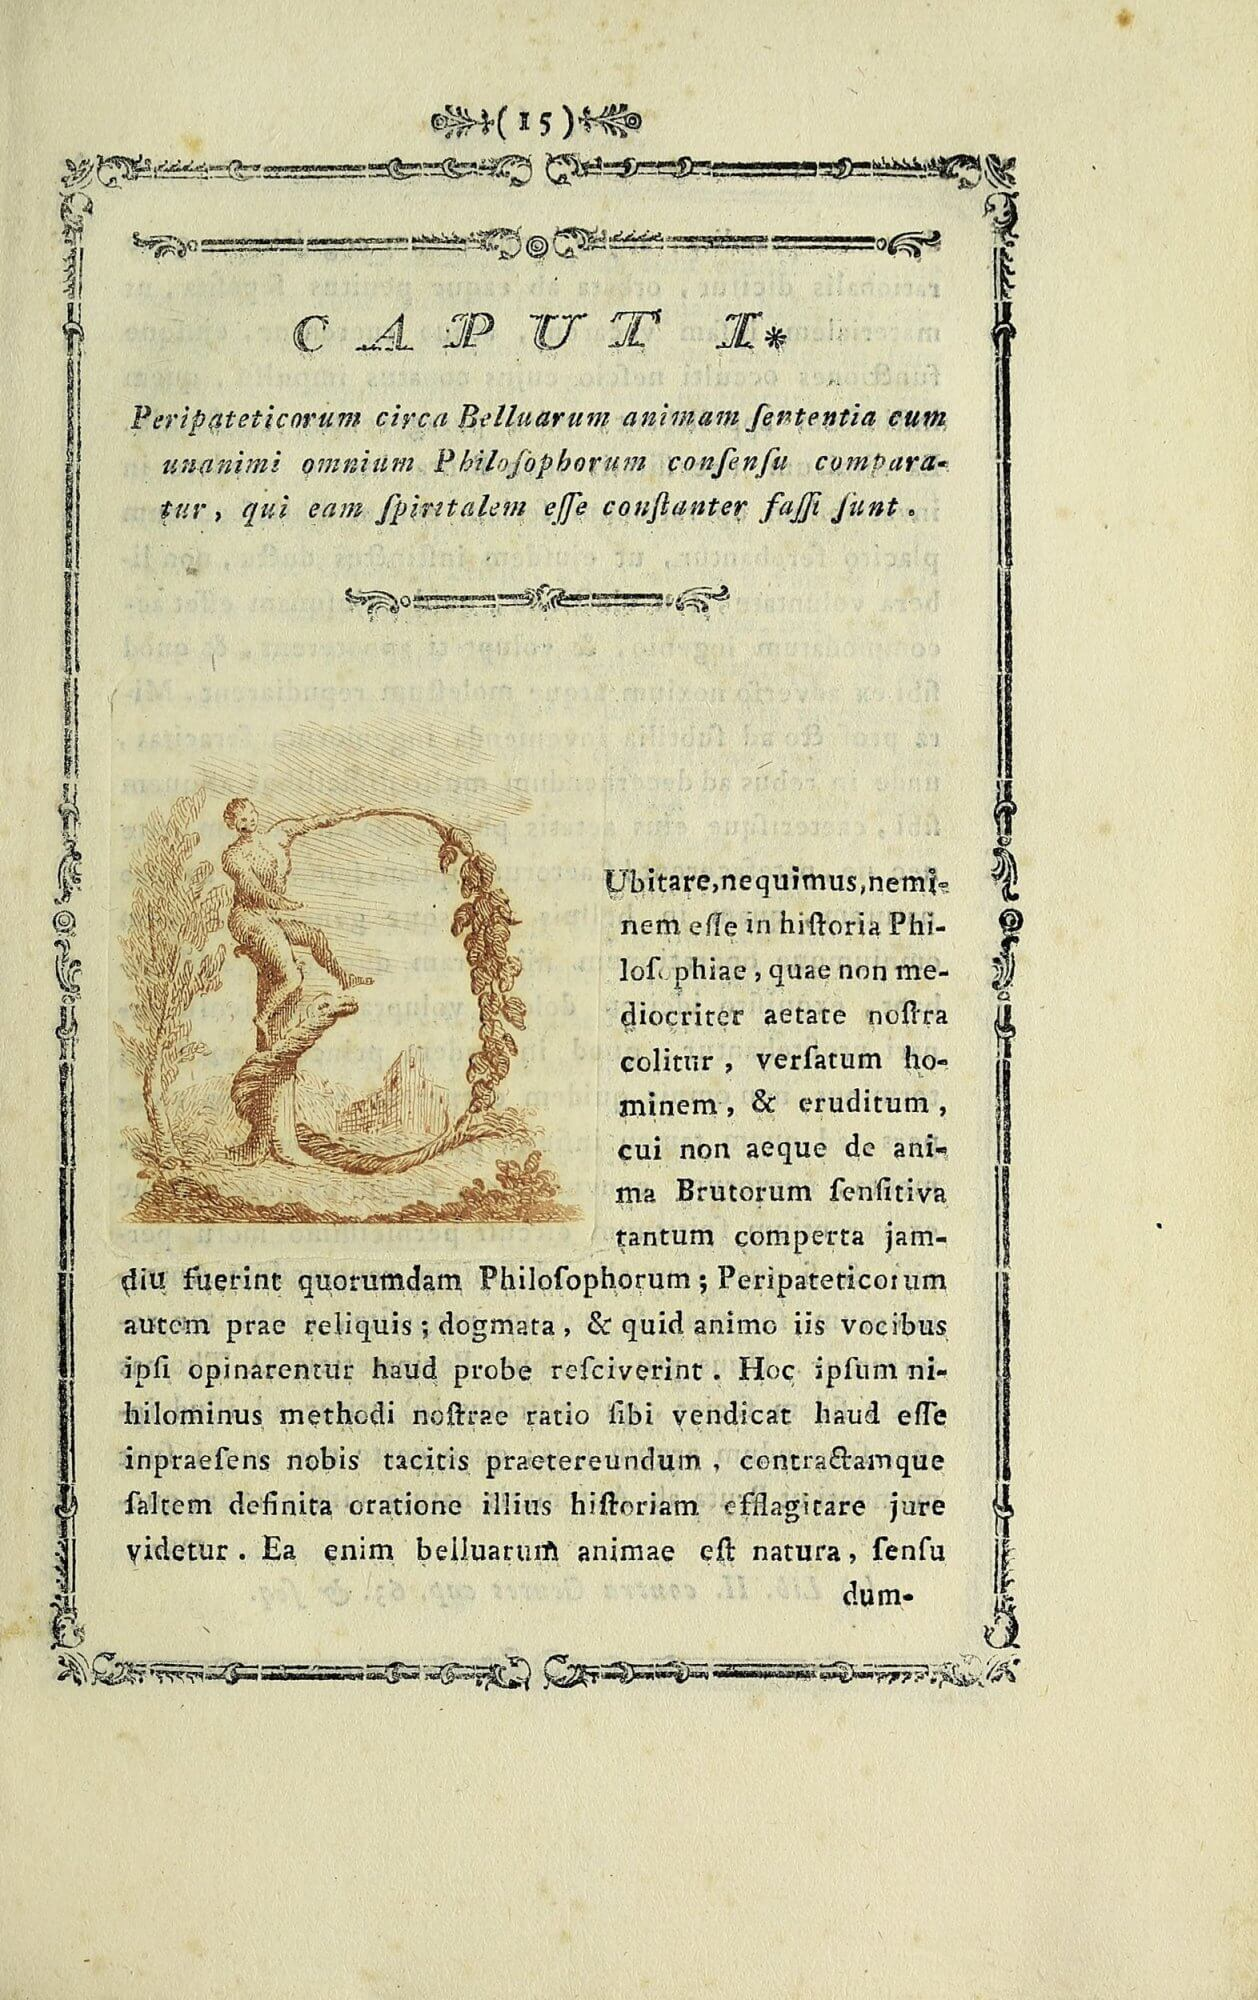 The opening of each chapter in this book features intaglio initial letters, the colors of which vary from copy to copy. In this copy from the Smithsonian, an ochre ink is used, but in the Getty's copy, the initial letter is printed in blue.